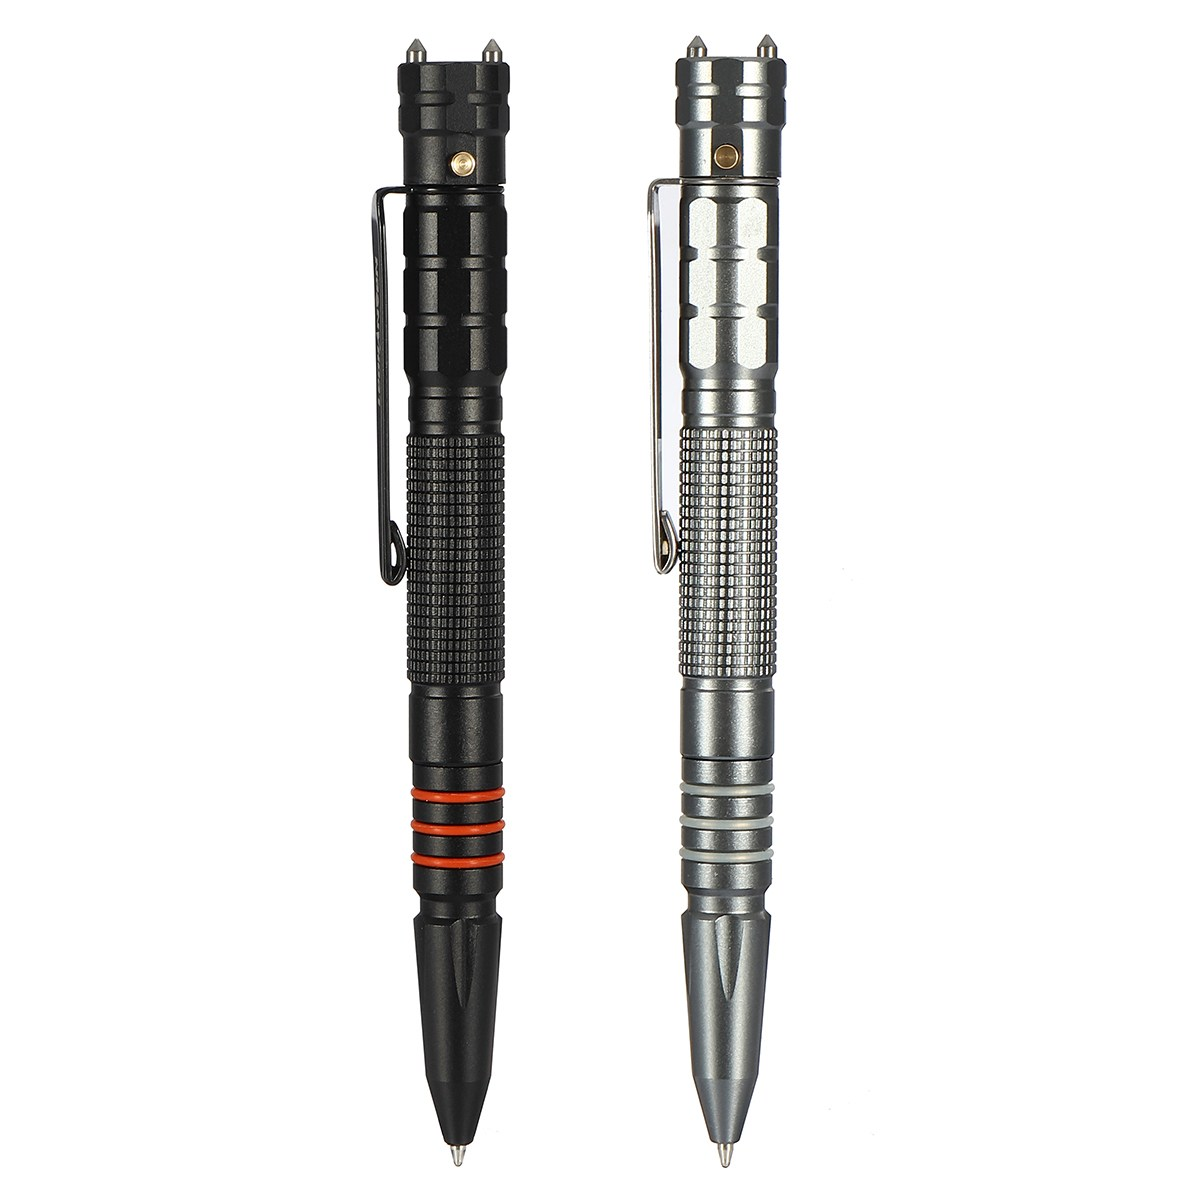 NEW Multifunctional Tungsten Steel Tactical Pen Tool With LED Flashlight Torch Lamp Self Protection Security new 7 in 1 multifunctional tool led flashlight camping hiking tool tool screwdriver daily tool torch lamp charging use 18650